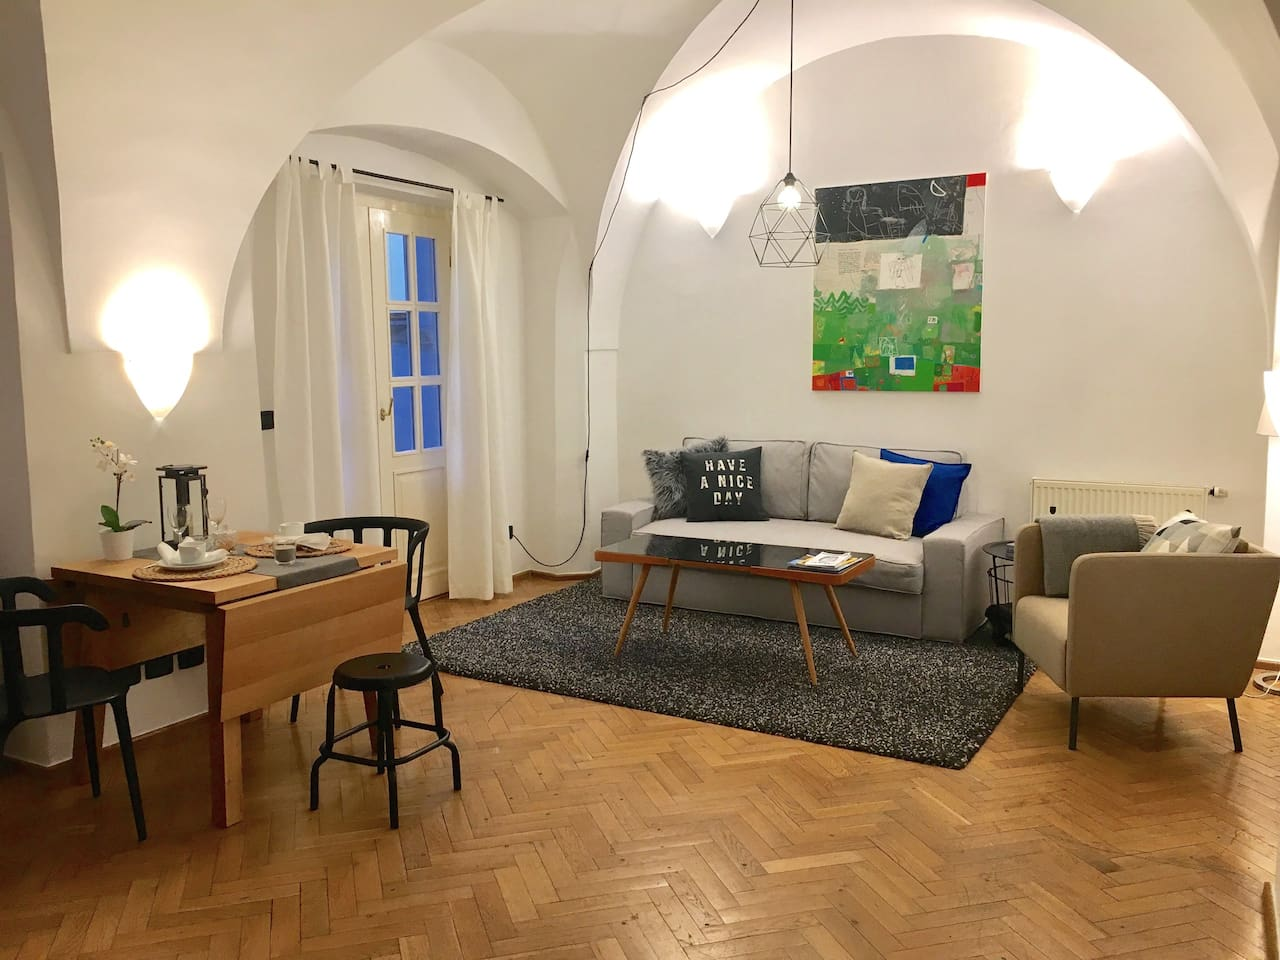 ART APARTMENT IN THE HEART OF OLD TOWN, NEW! - Wohnungen zur Miete ...